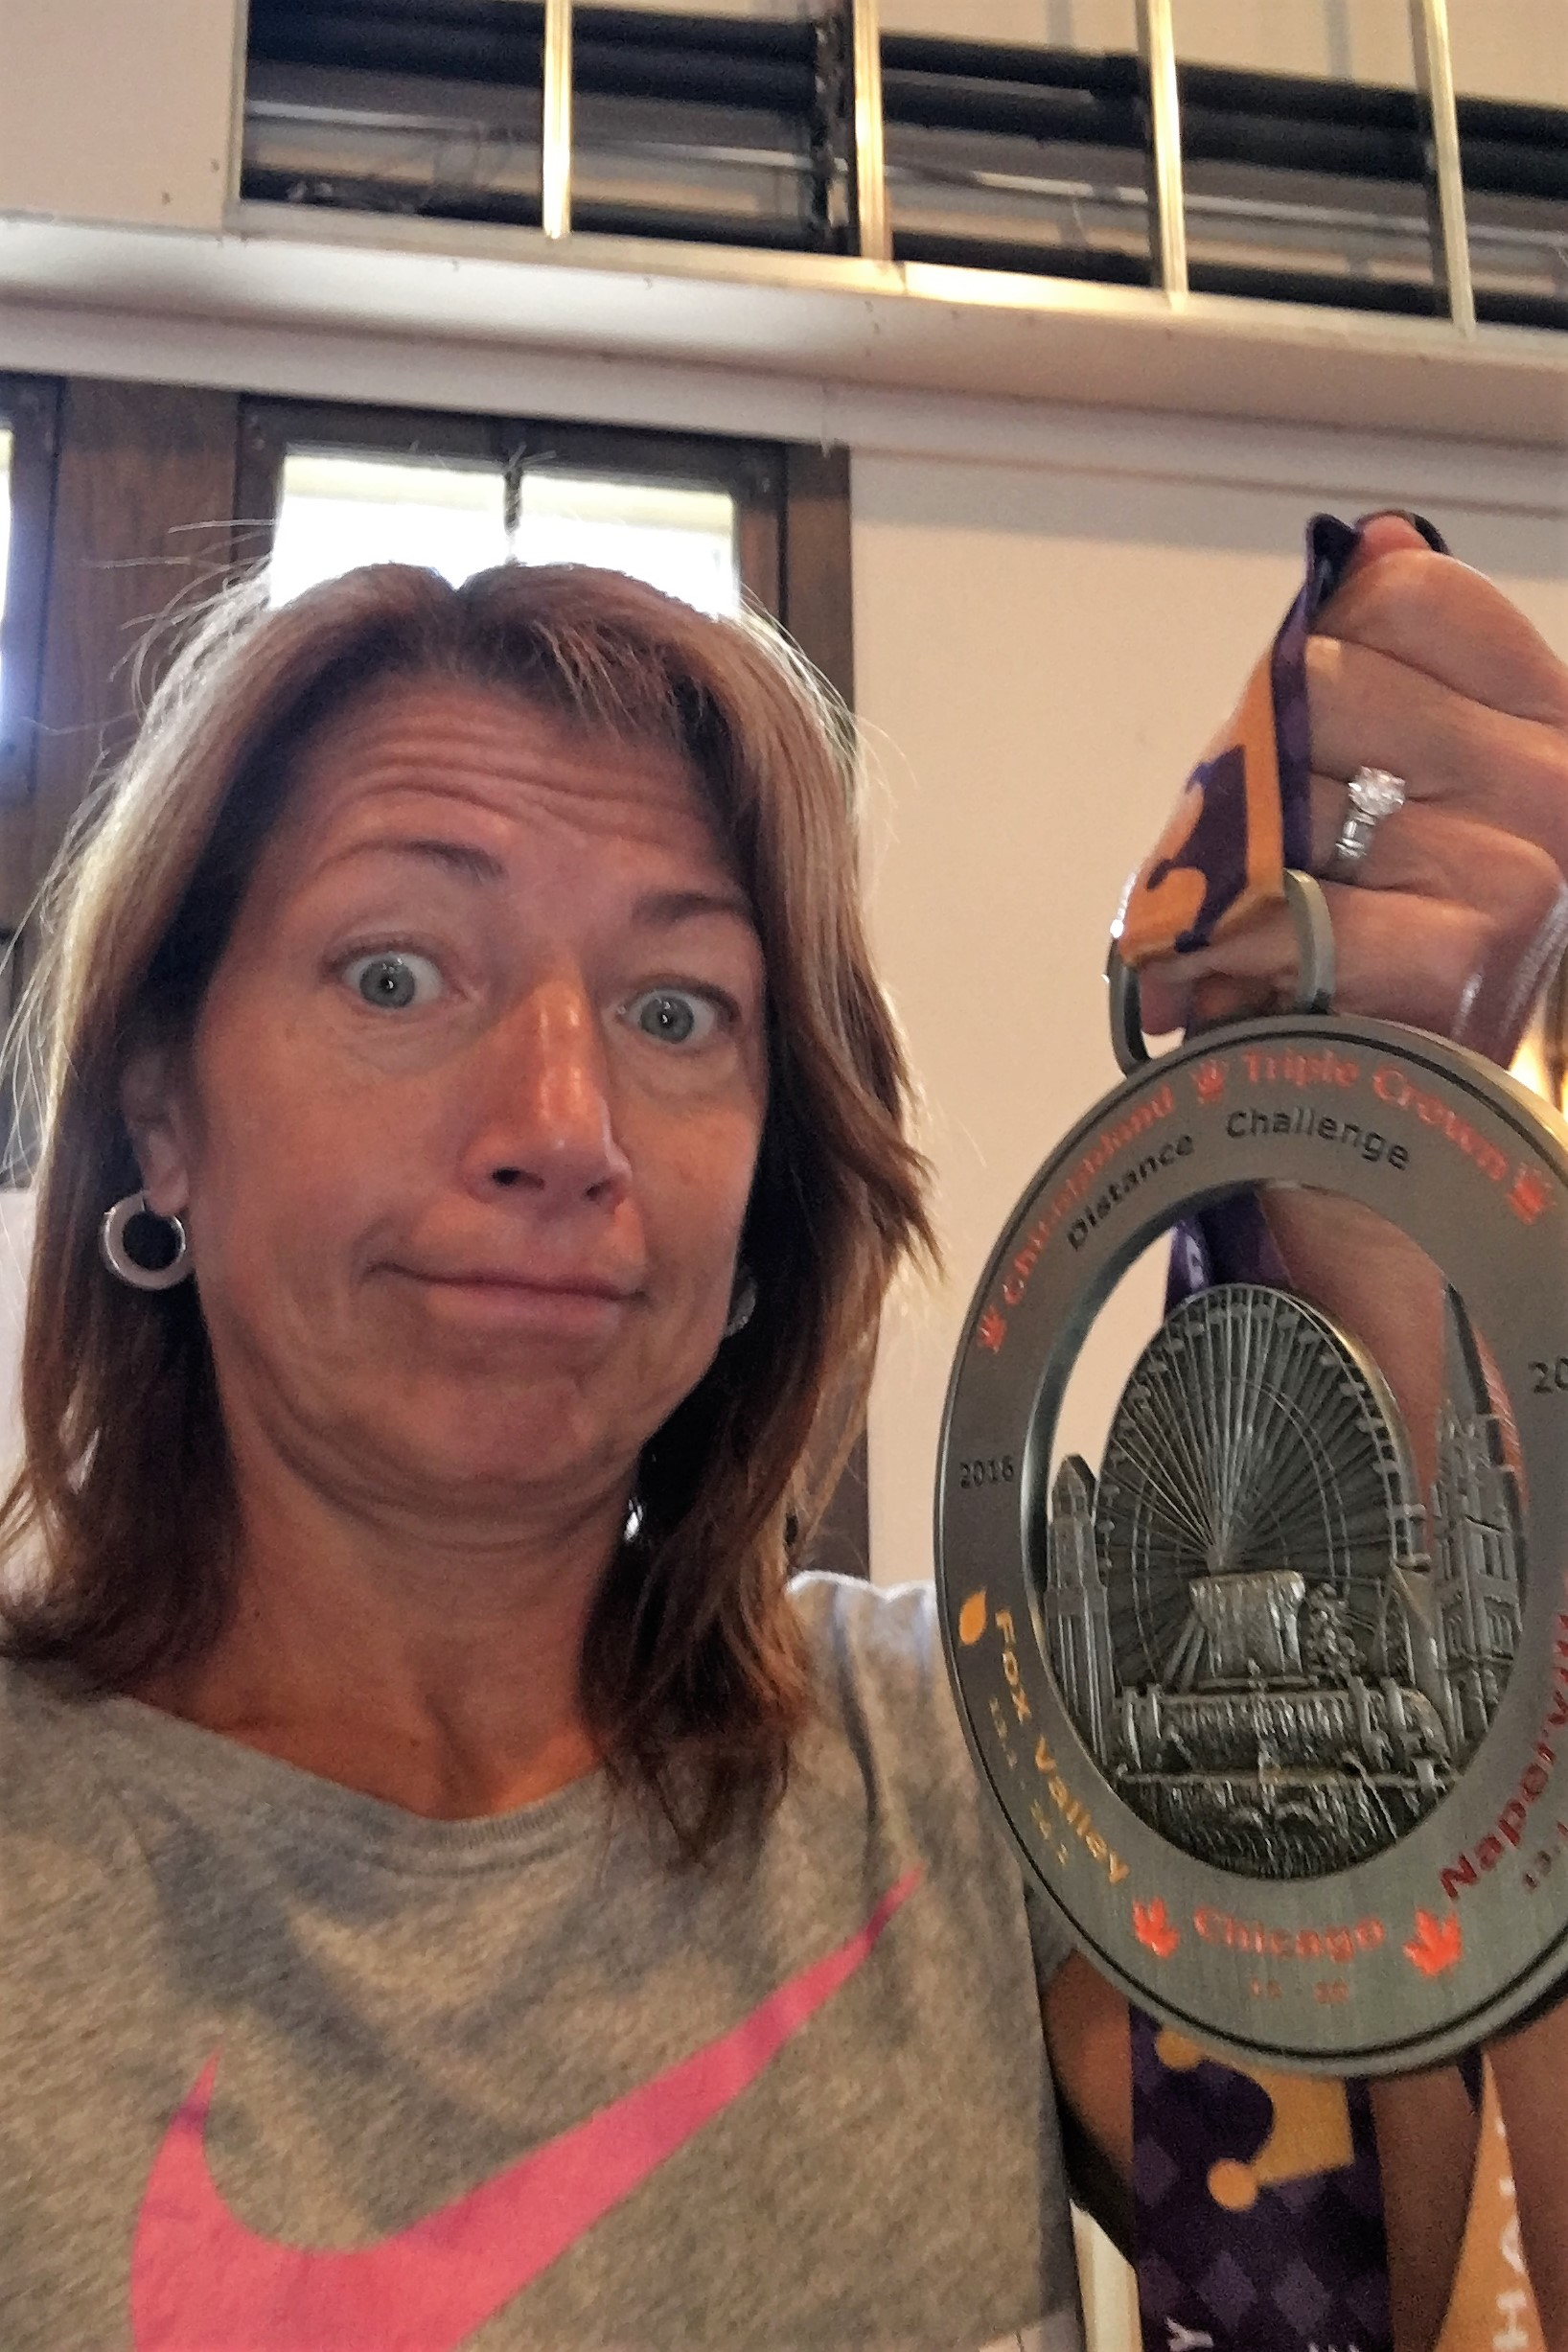 Holy Moly, That's One Big Medal!